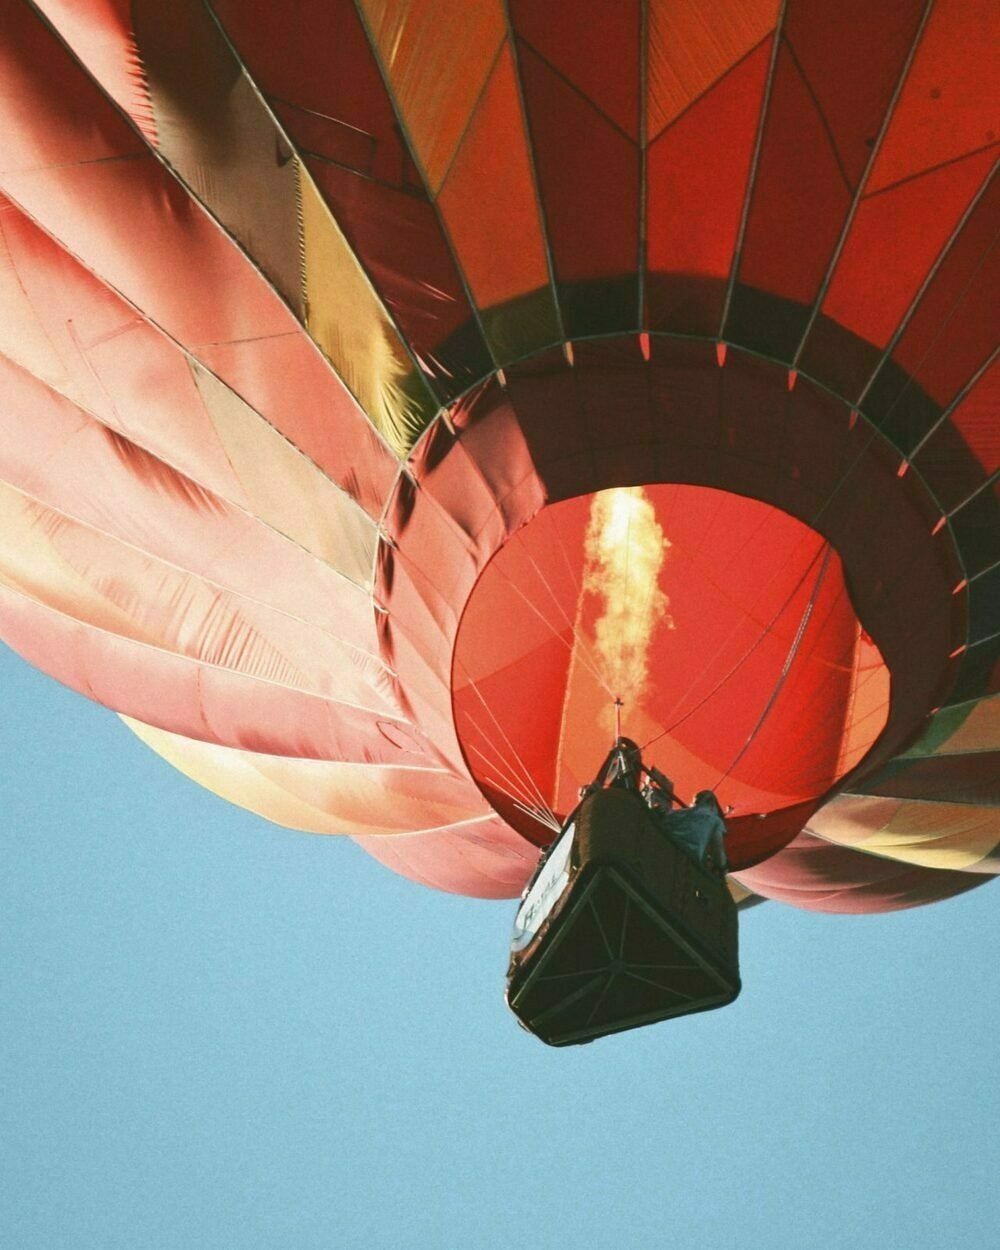 Hot air balloon with fire